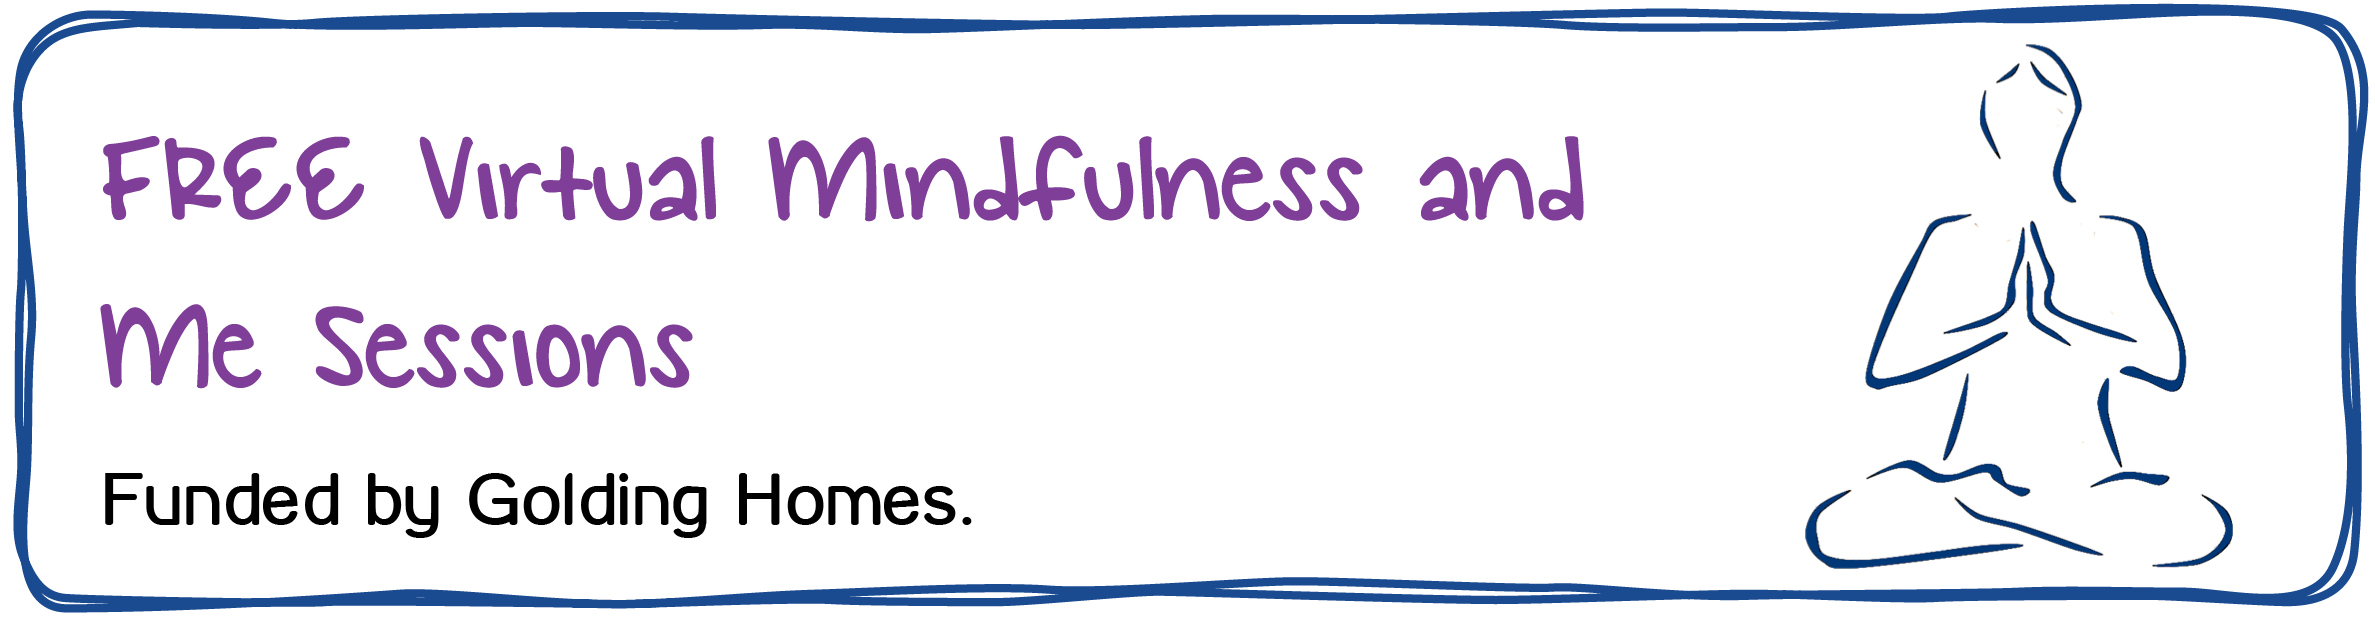 FREE Virtual Mindfulness and Me Sessions. Funded by Golding Homes